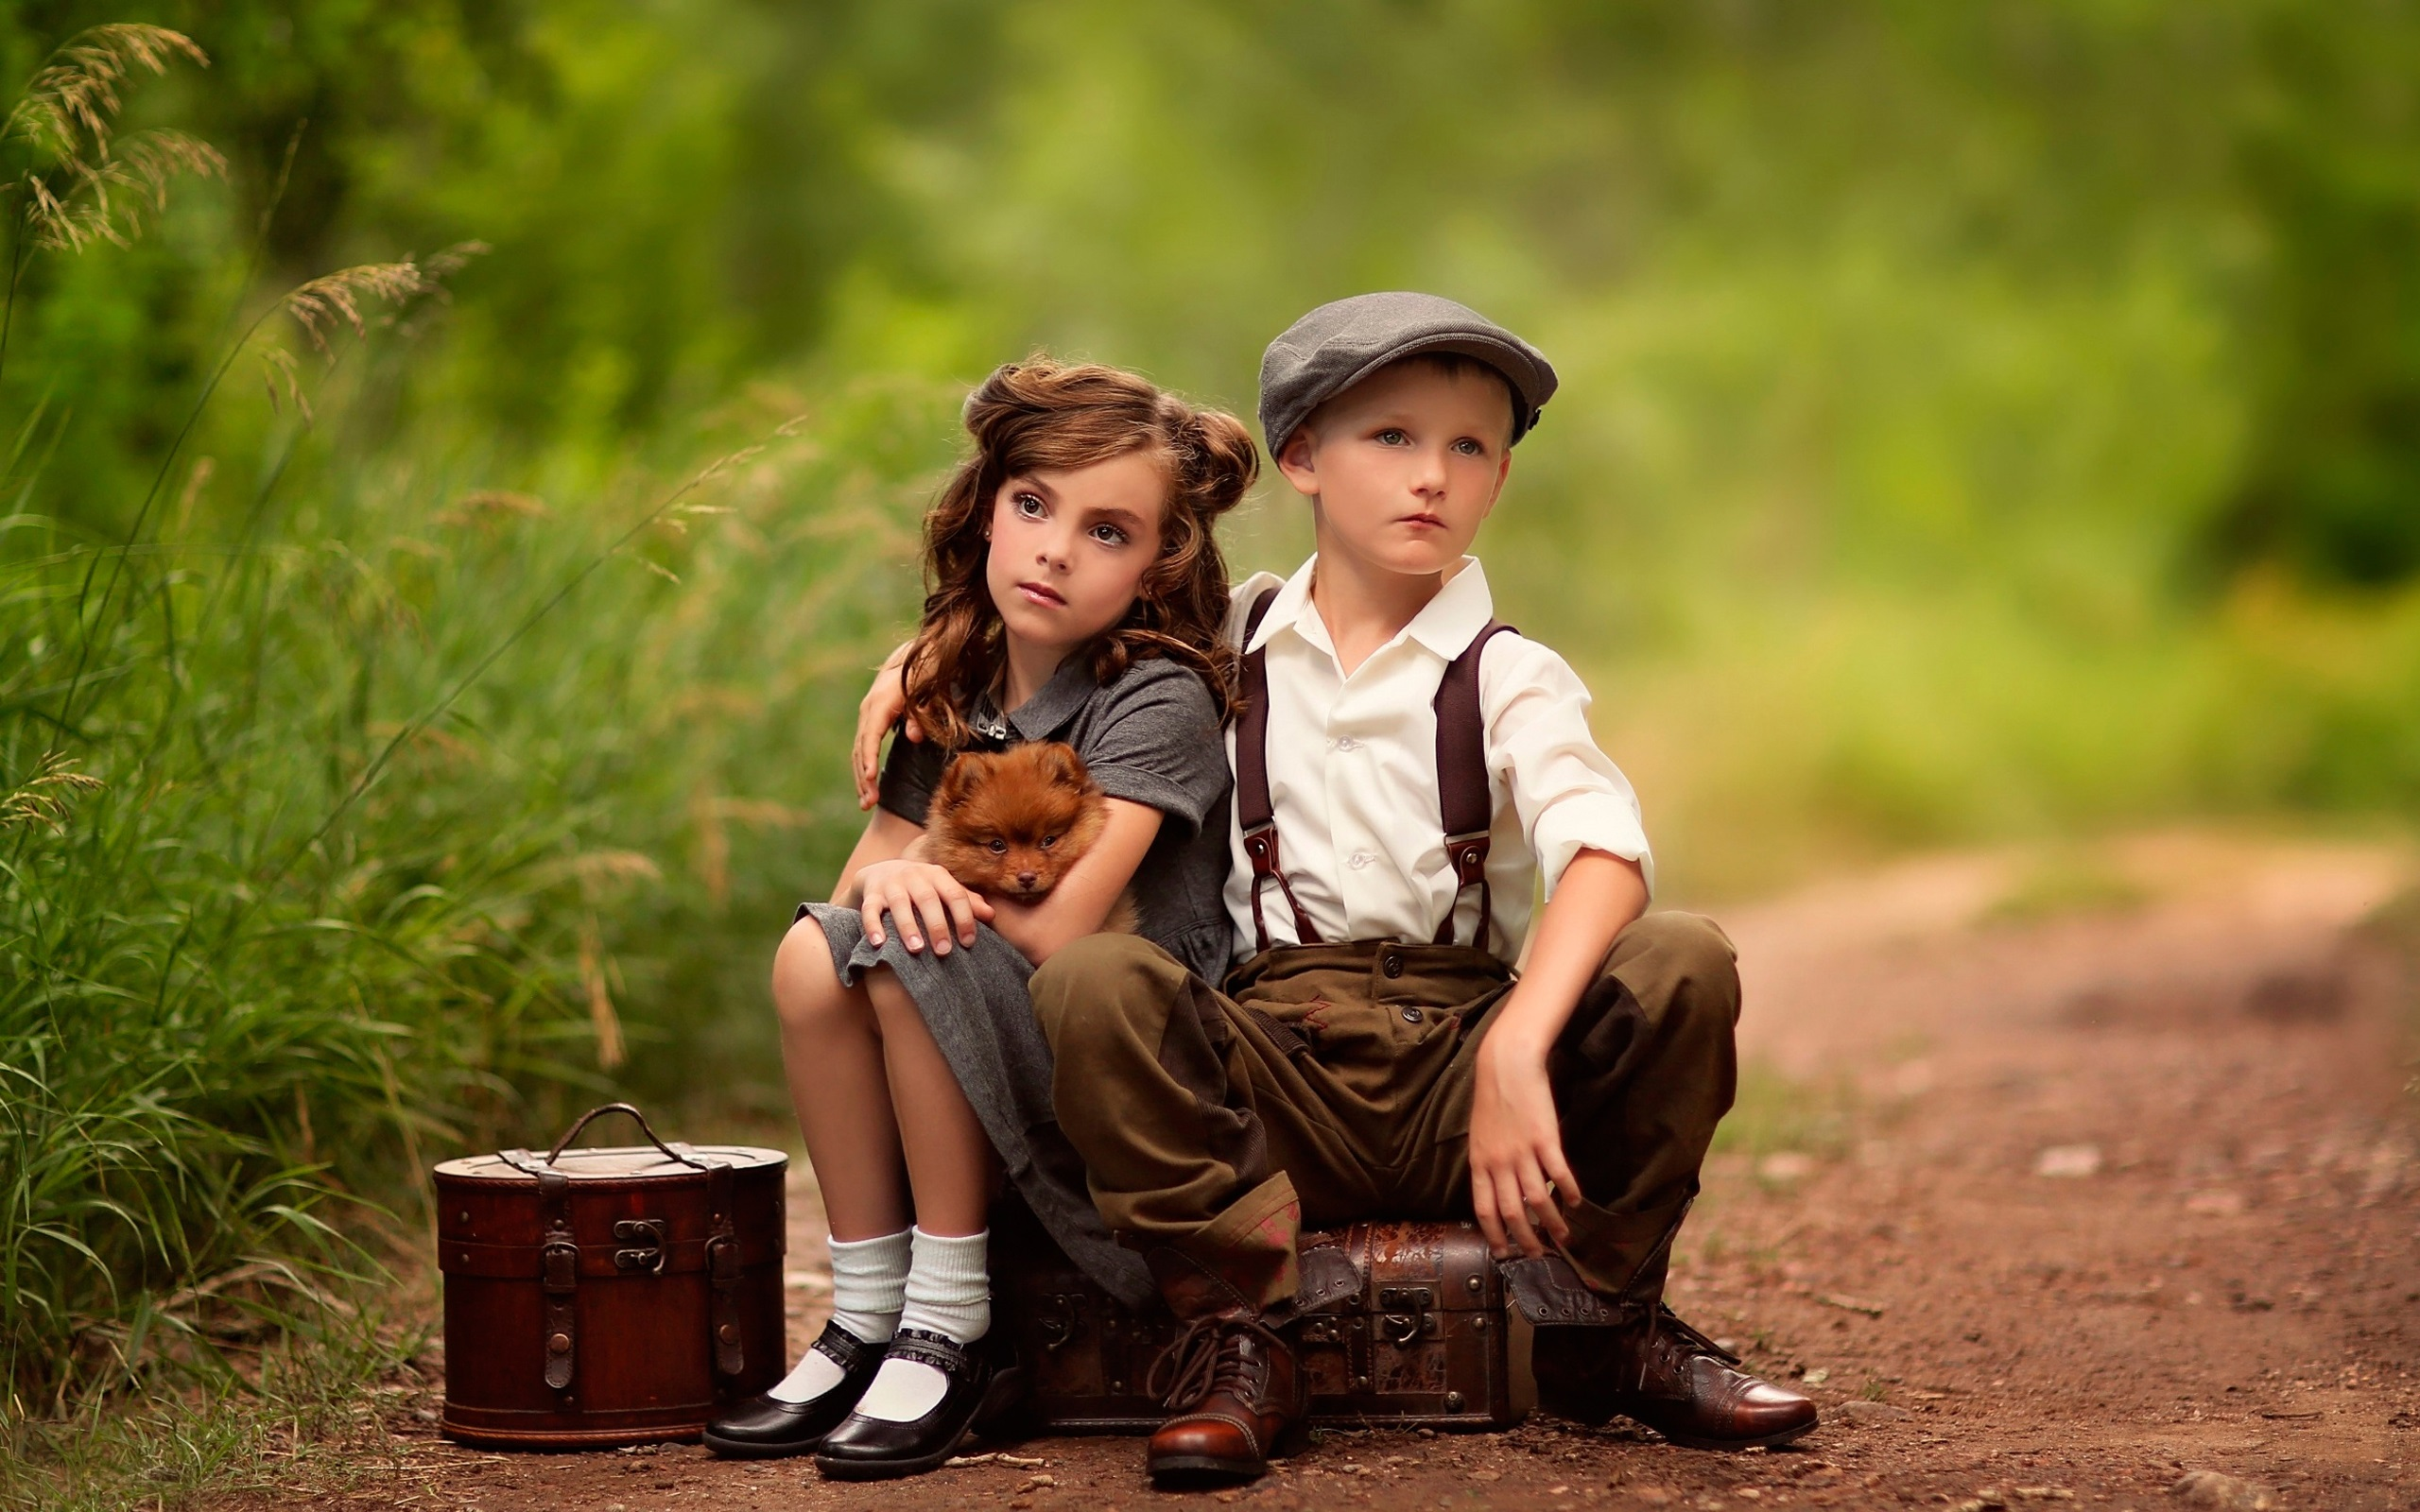 Download This Wallpaper Cute Boys And Girls 539514 Hd Wallpaper Backgrounds Download